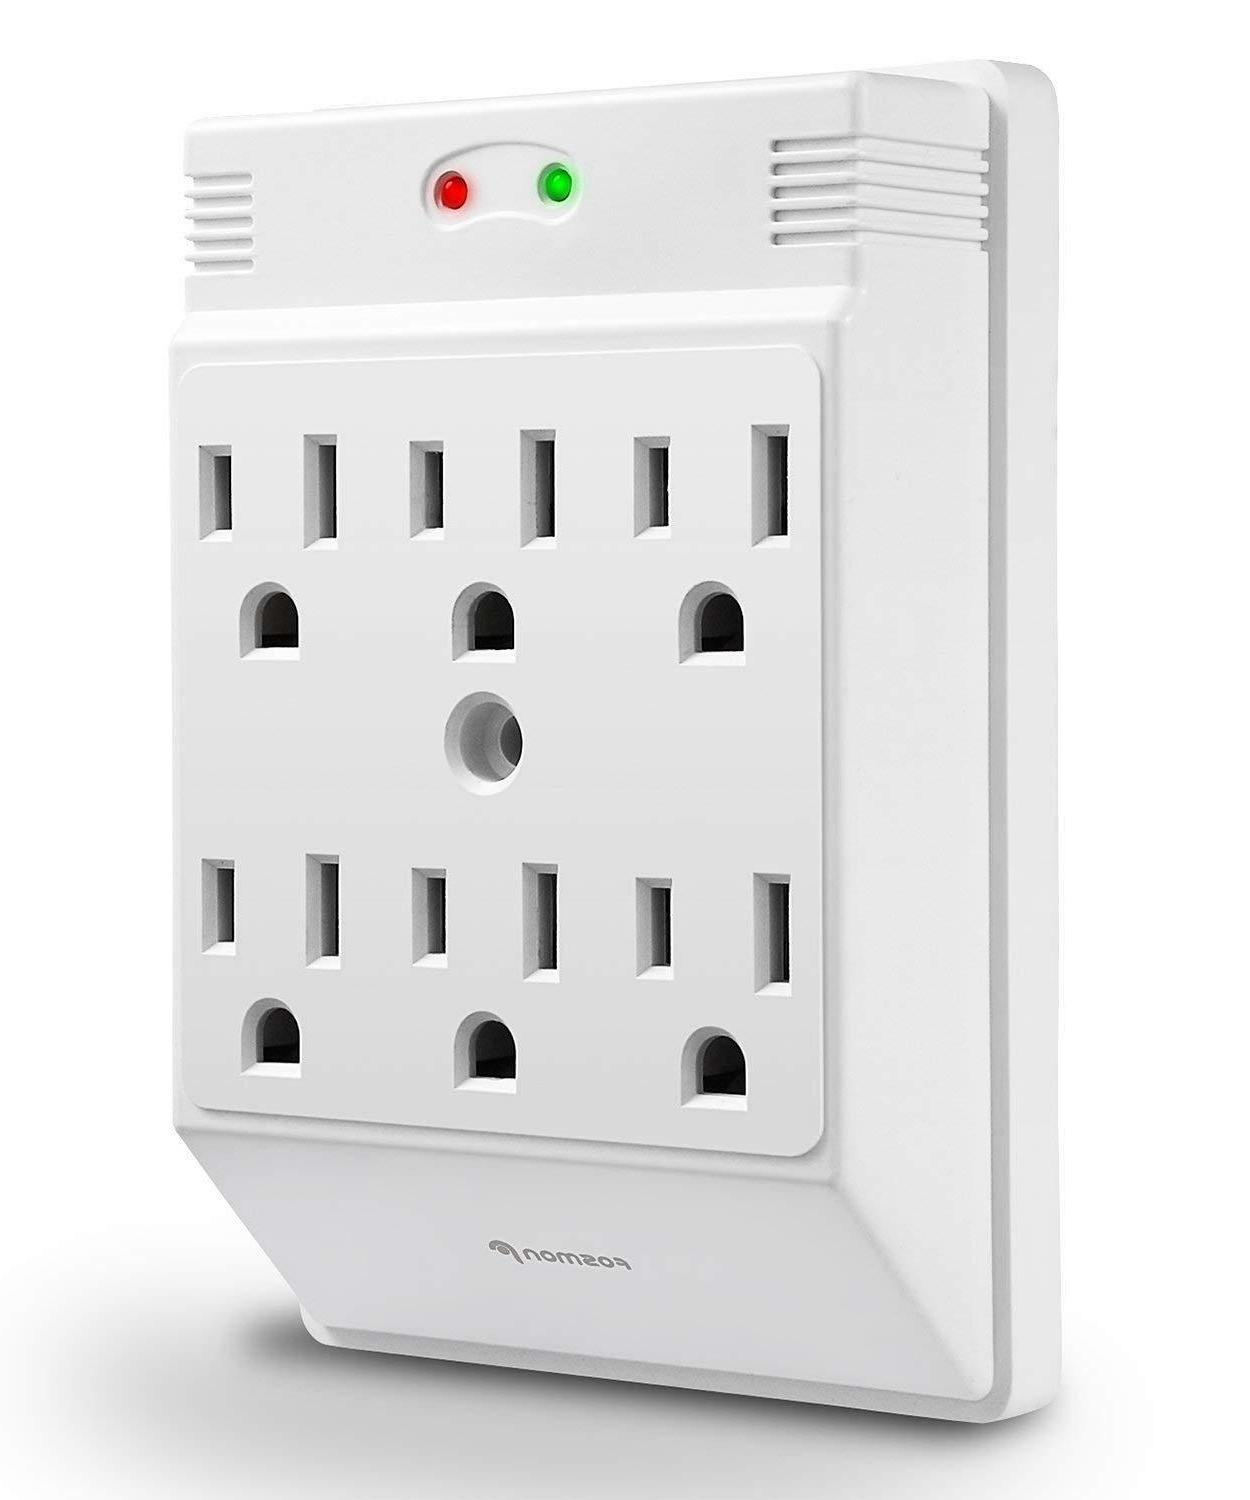 Wall Tap Adapter Power Surge Protector Outlets Outlets